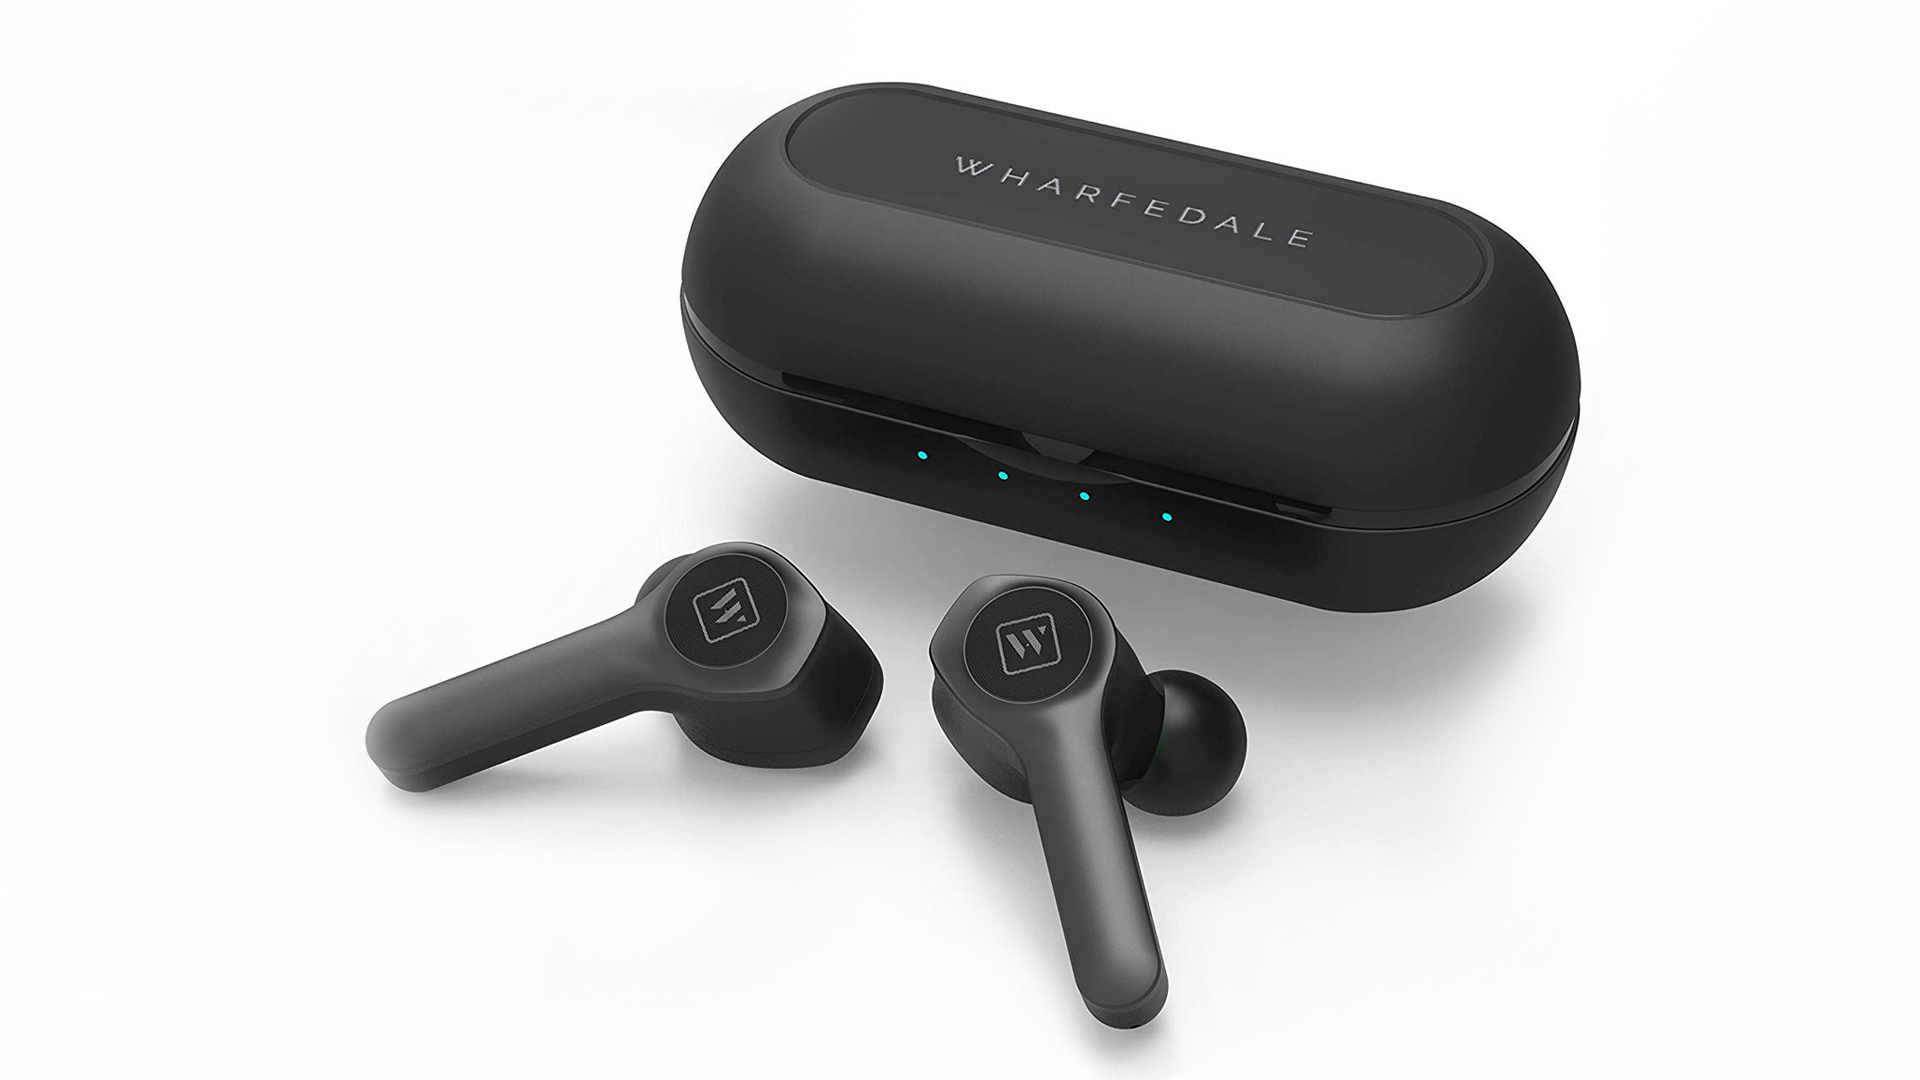 WPods with recharge case (Image: Wharfedale)